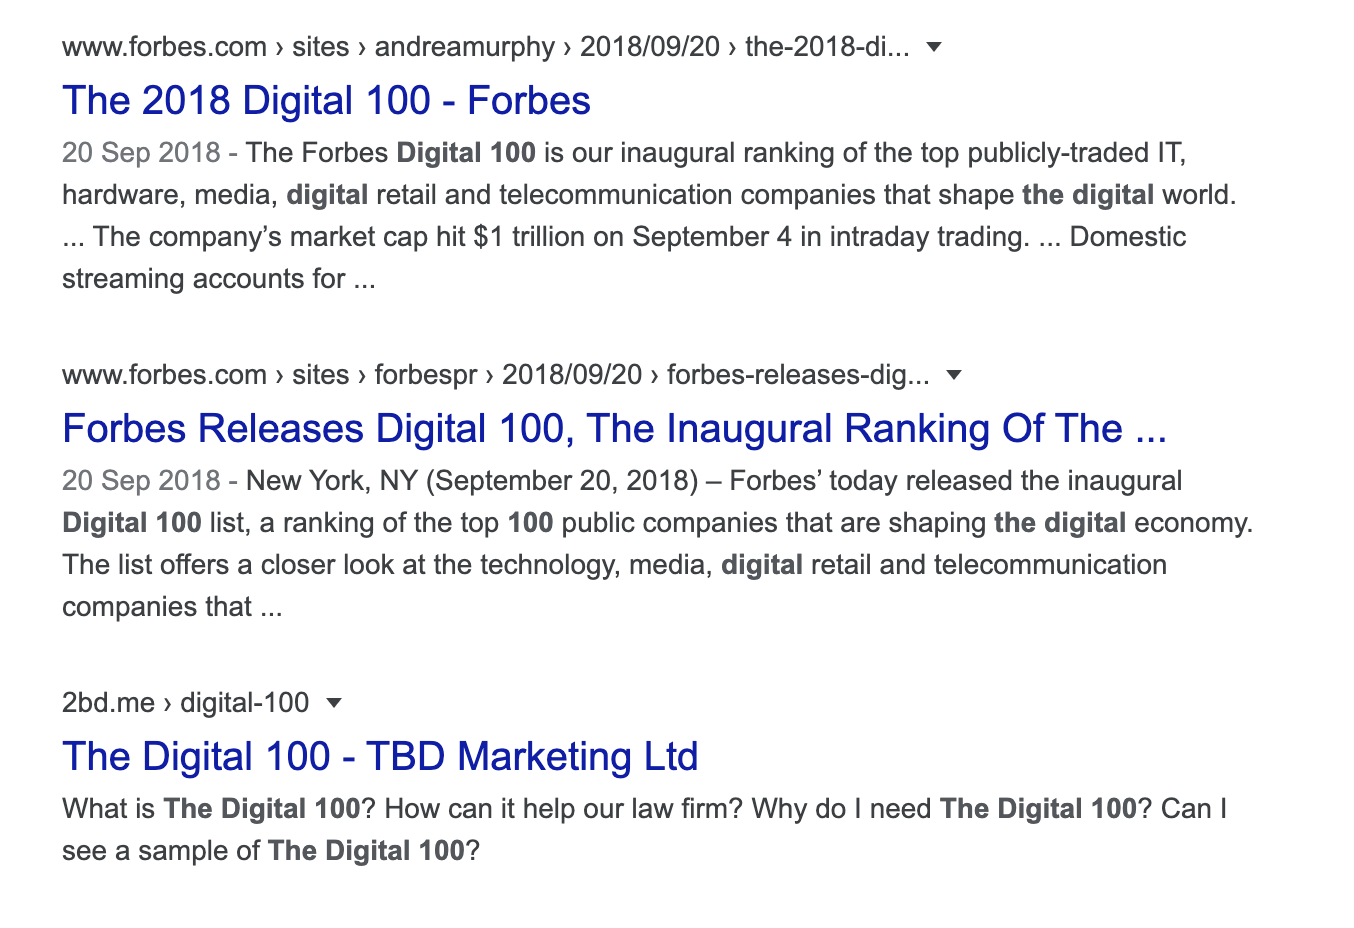 How does The Digital 100 rank on Google?